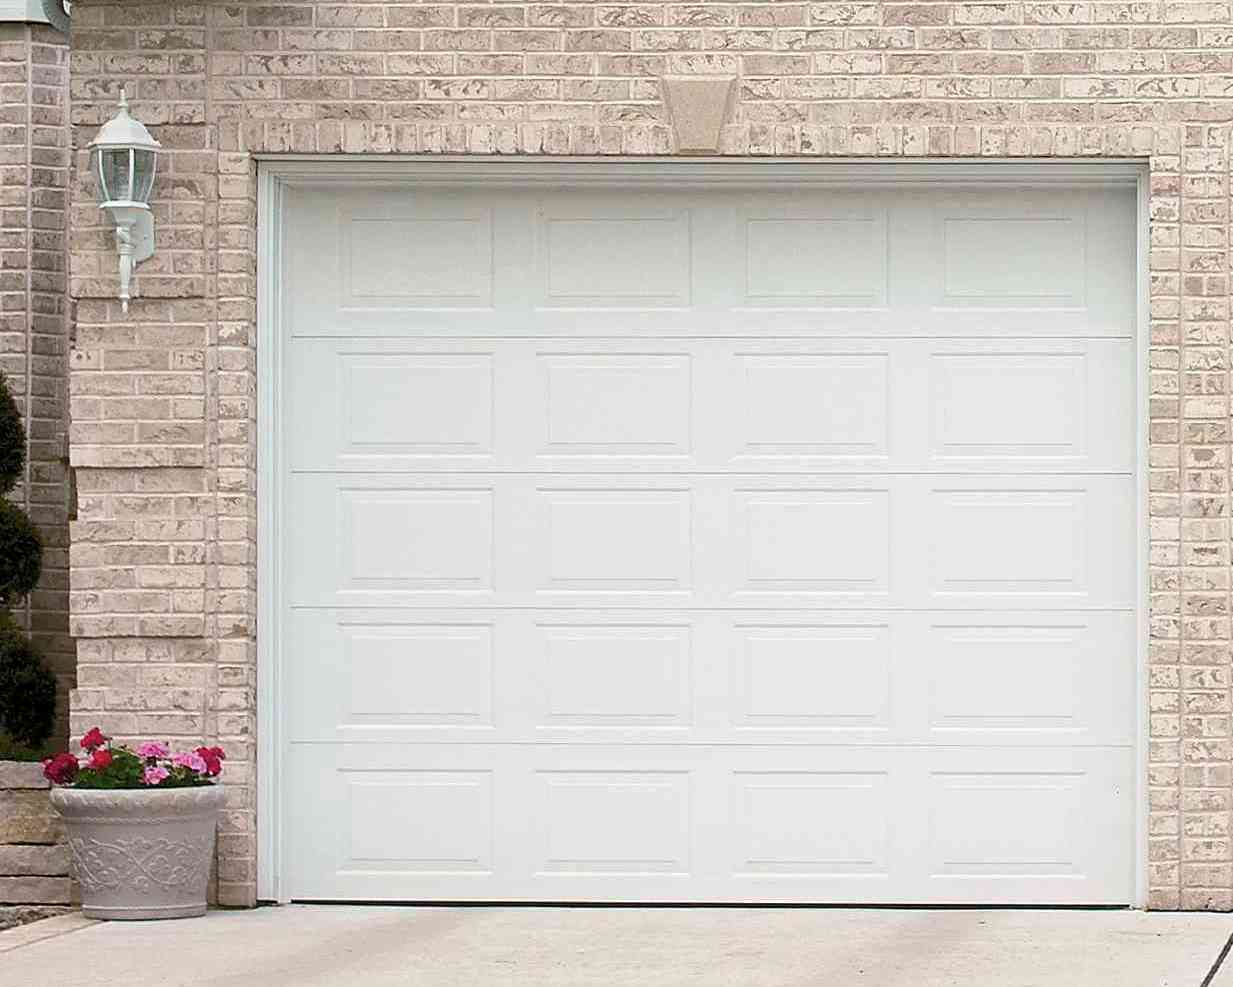 987 #963569 Garage Door Frames Minnesota Bayer Built Woodworks wallpaper Grarage Doors 38151233